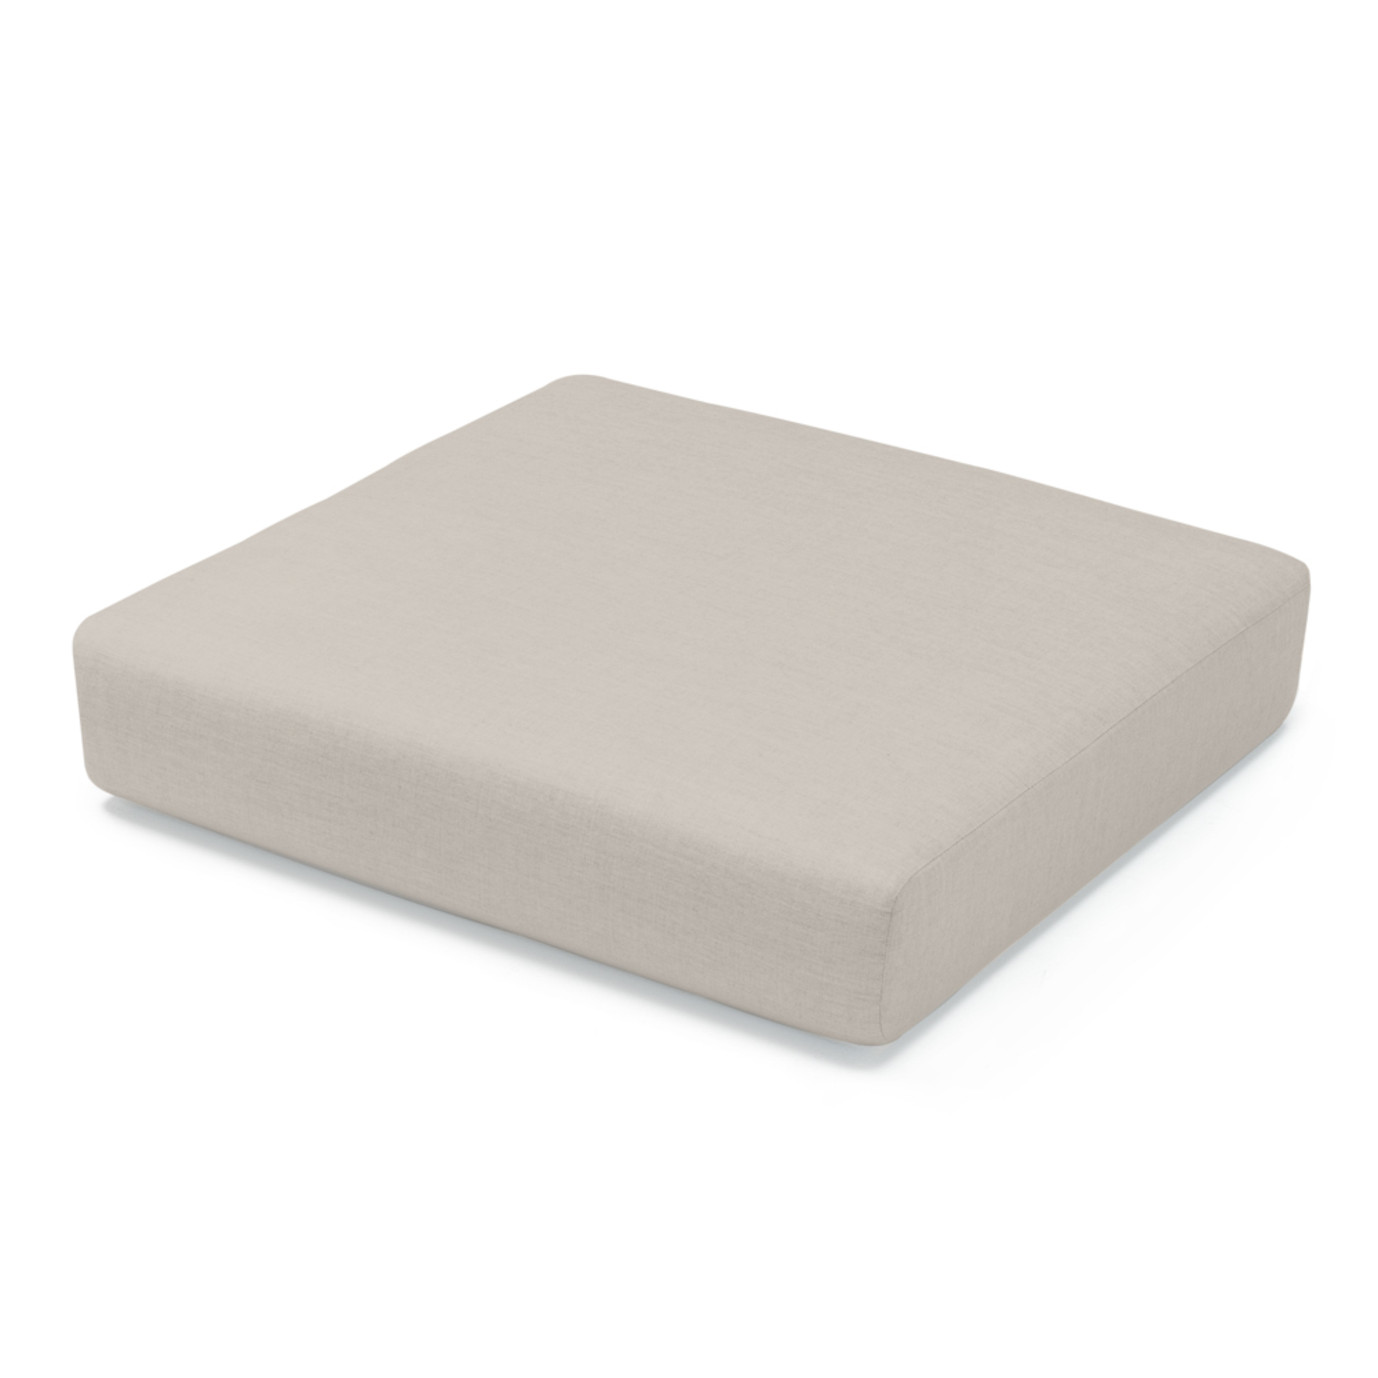 Portofino Comfort Corner Chair Base Cushion - Taupe Mist